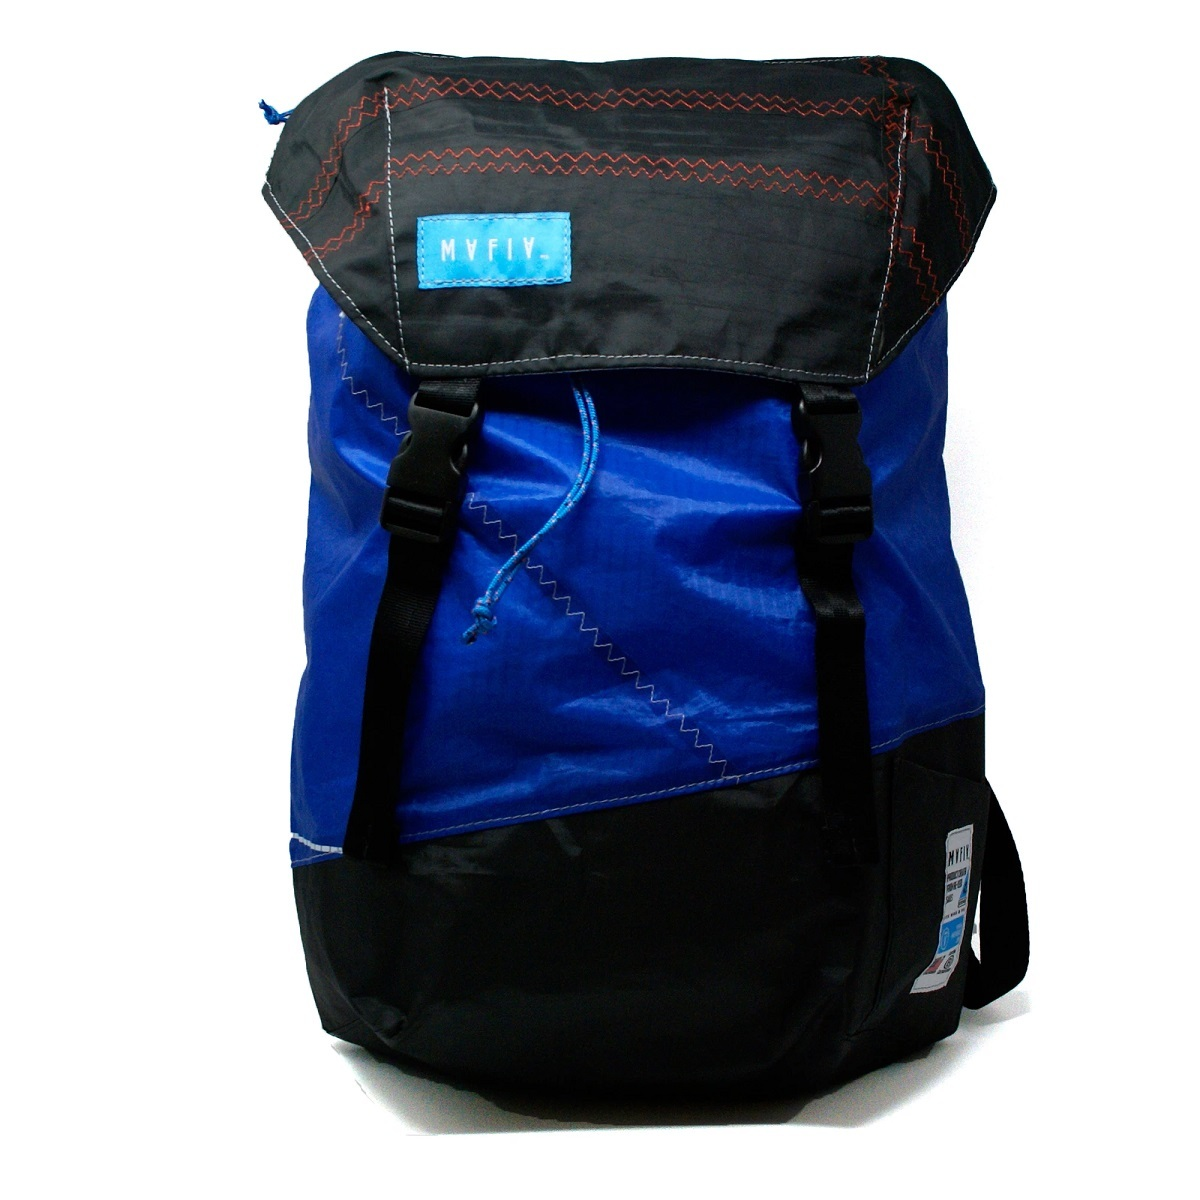 Discover Pack  アップサイクル バックパック  Mafia Bags ID: 192 / Blue